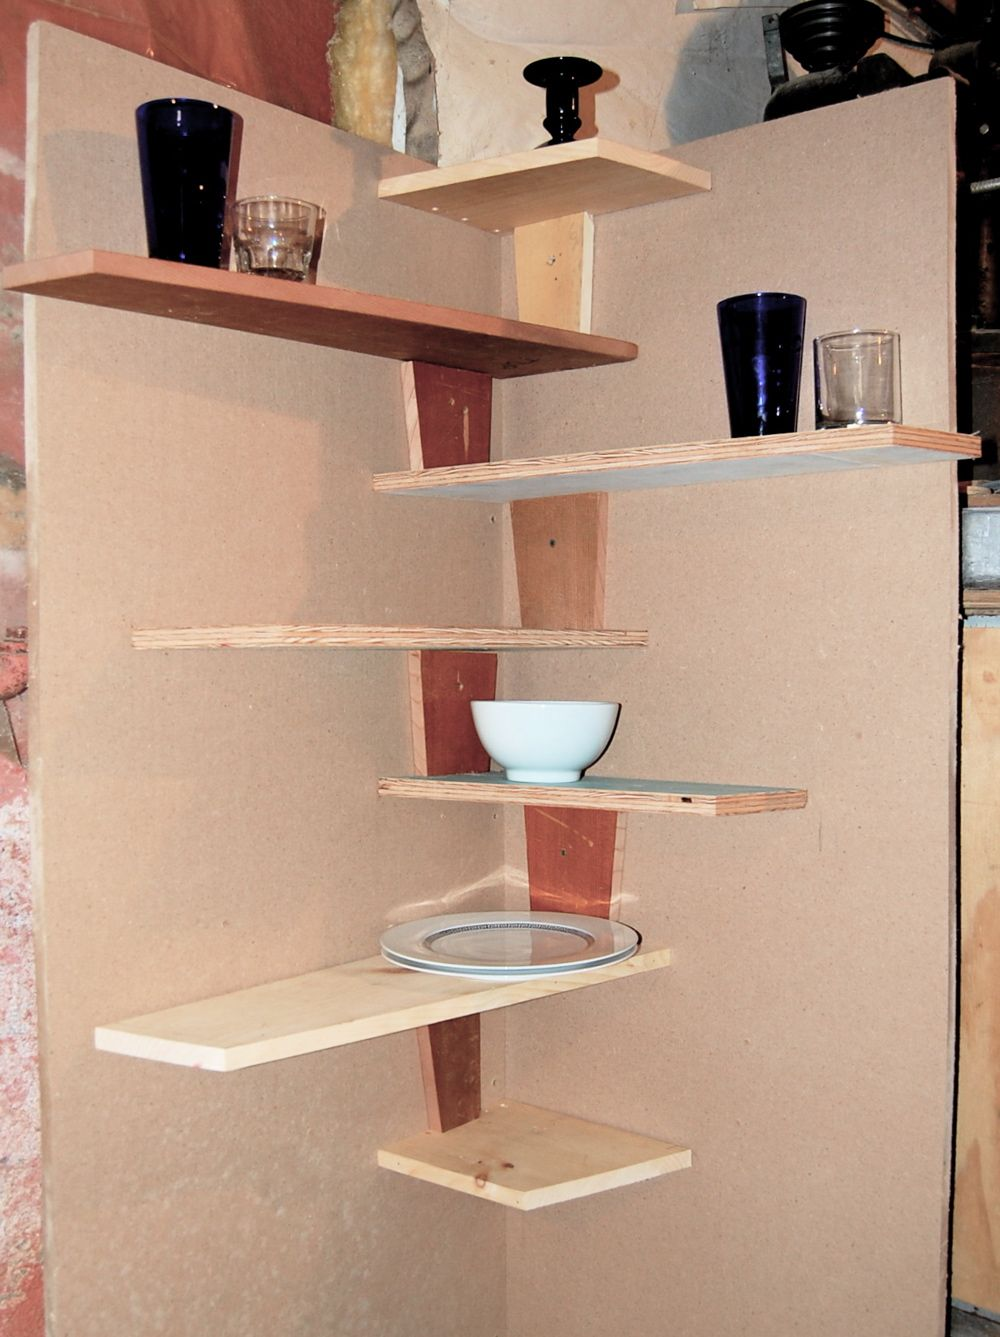 Corner Wall Shelf Unit Corner Climber Proto Prototype Shelf Kitchen Wall Shelves